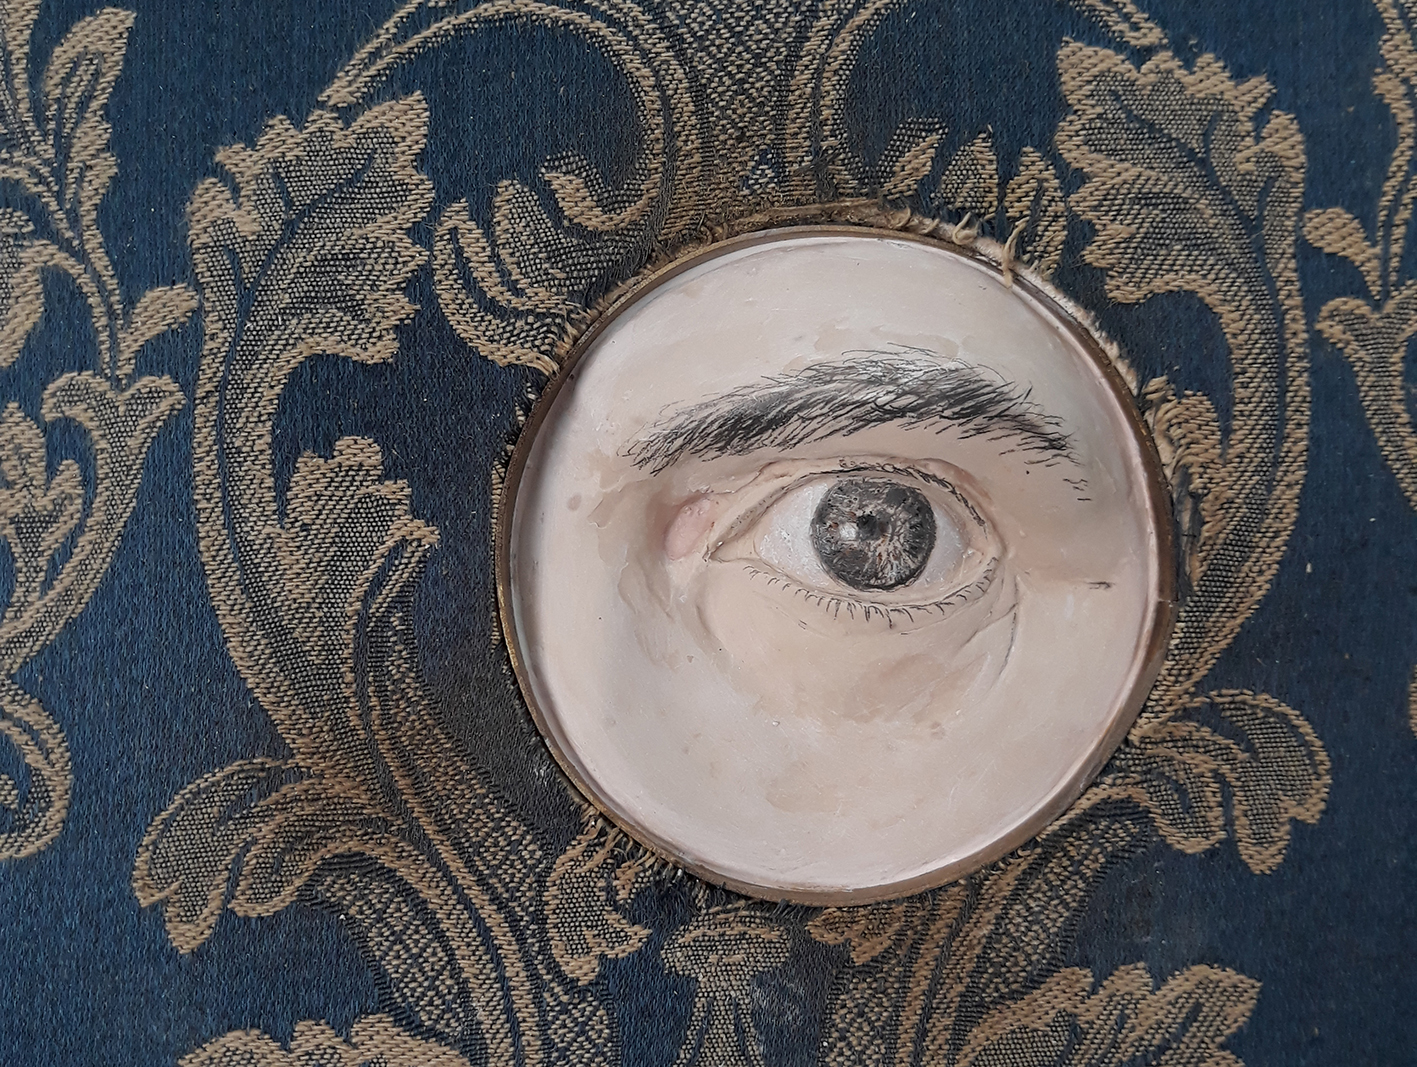 MR X's eye spy from a hole trought a brocade tapestry